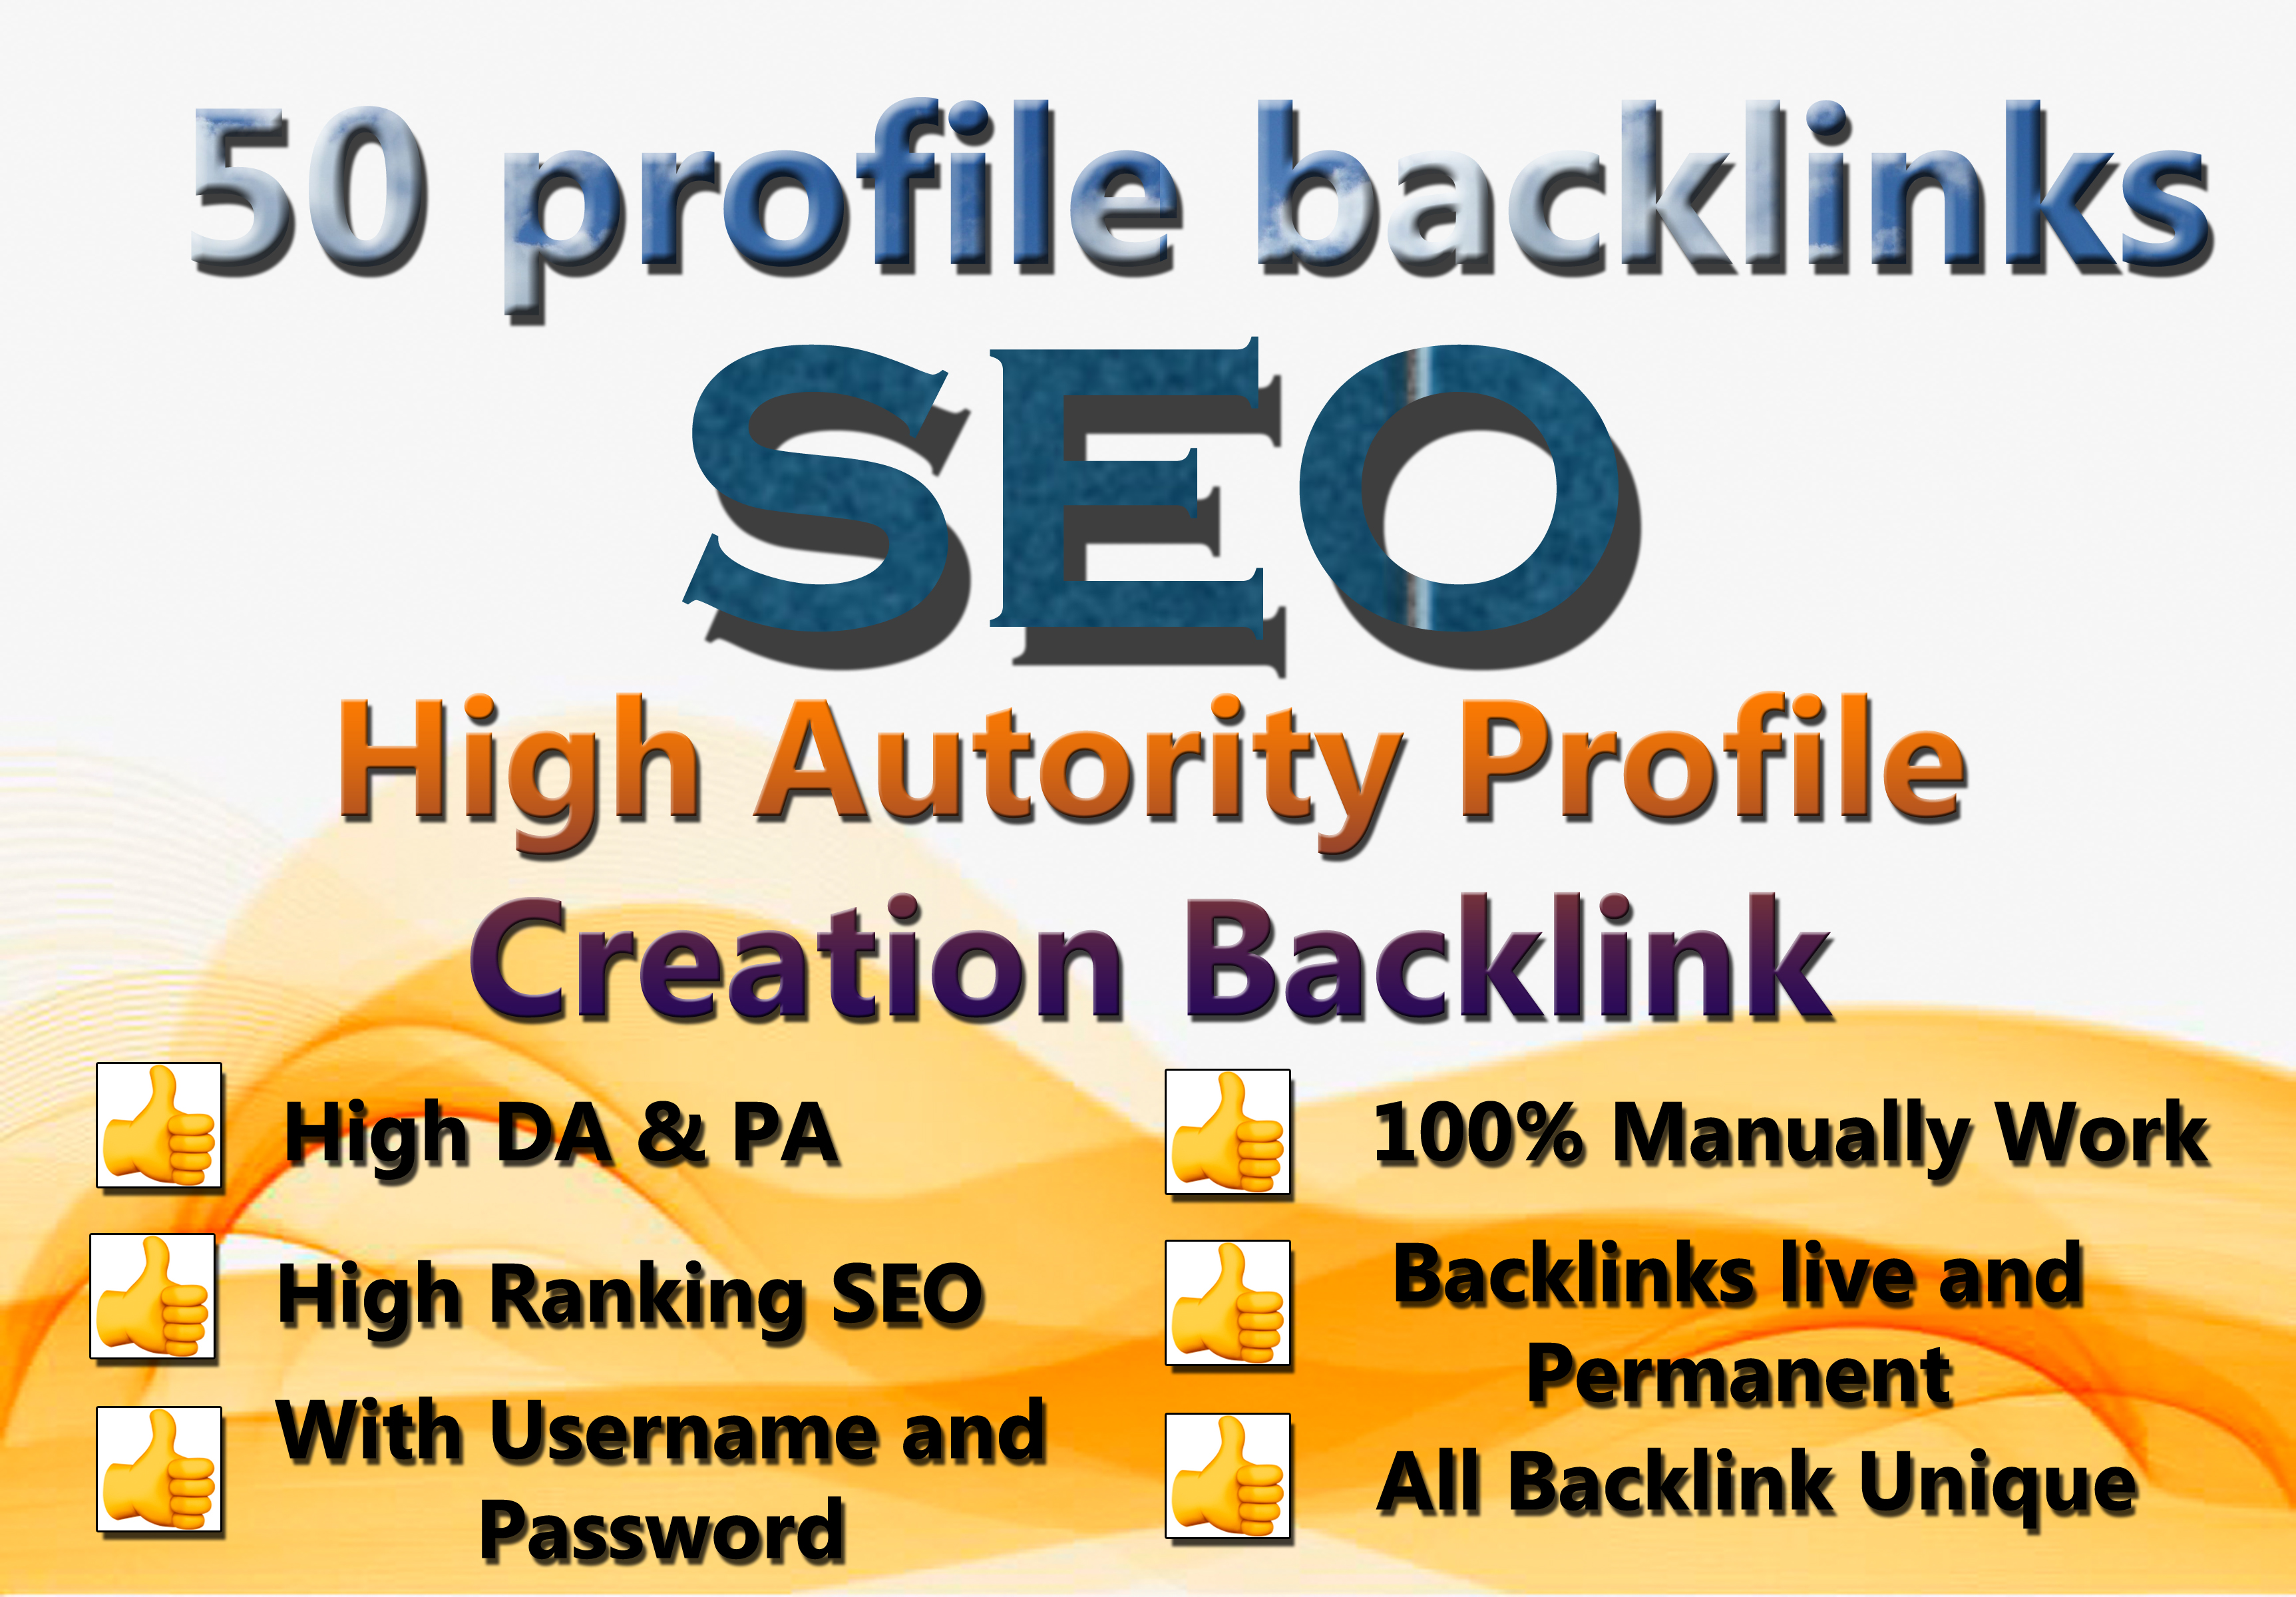 I will make 50 Unique High Authority Profile Backlinks